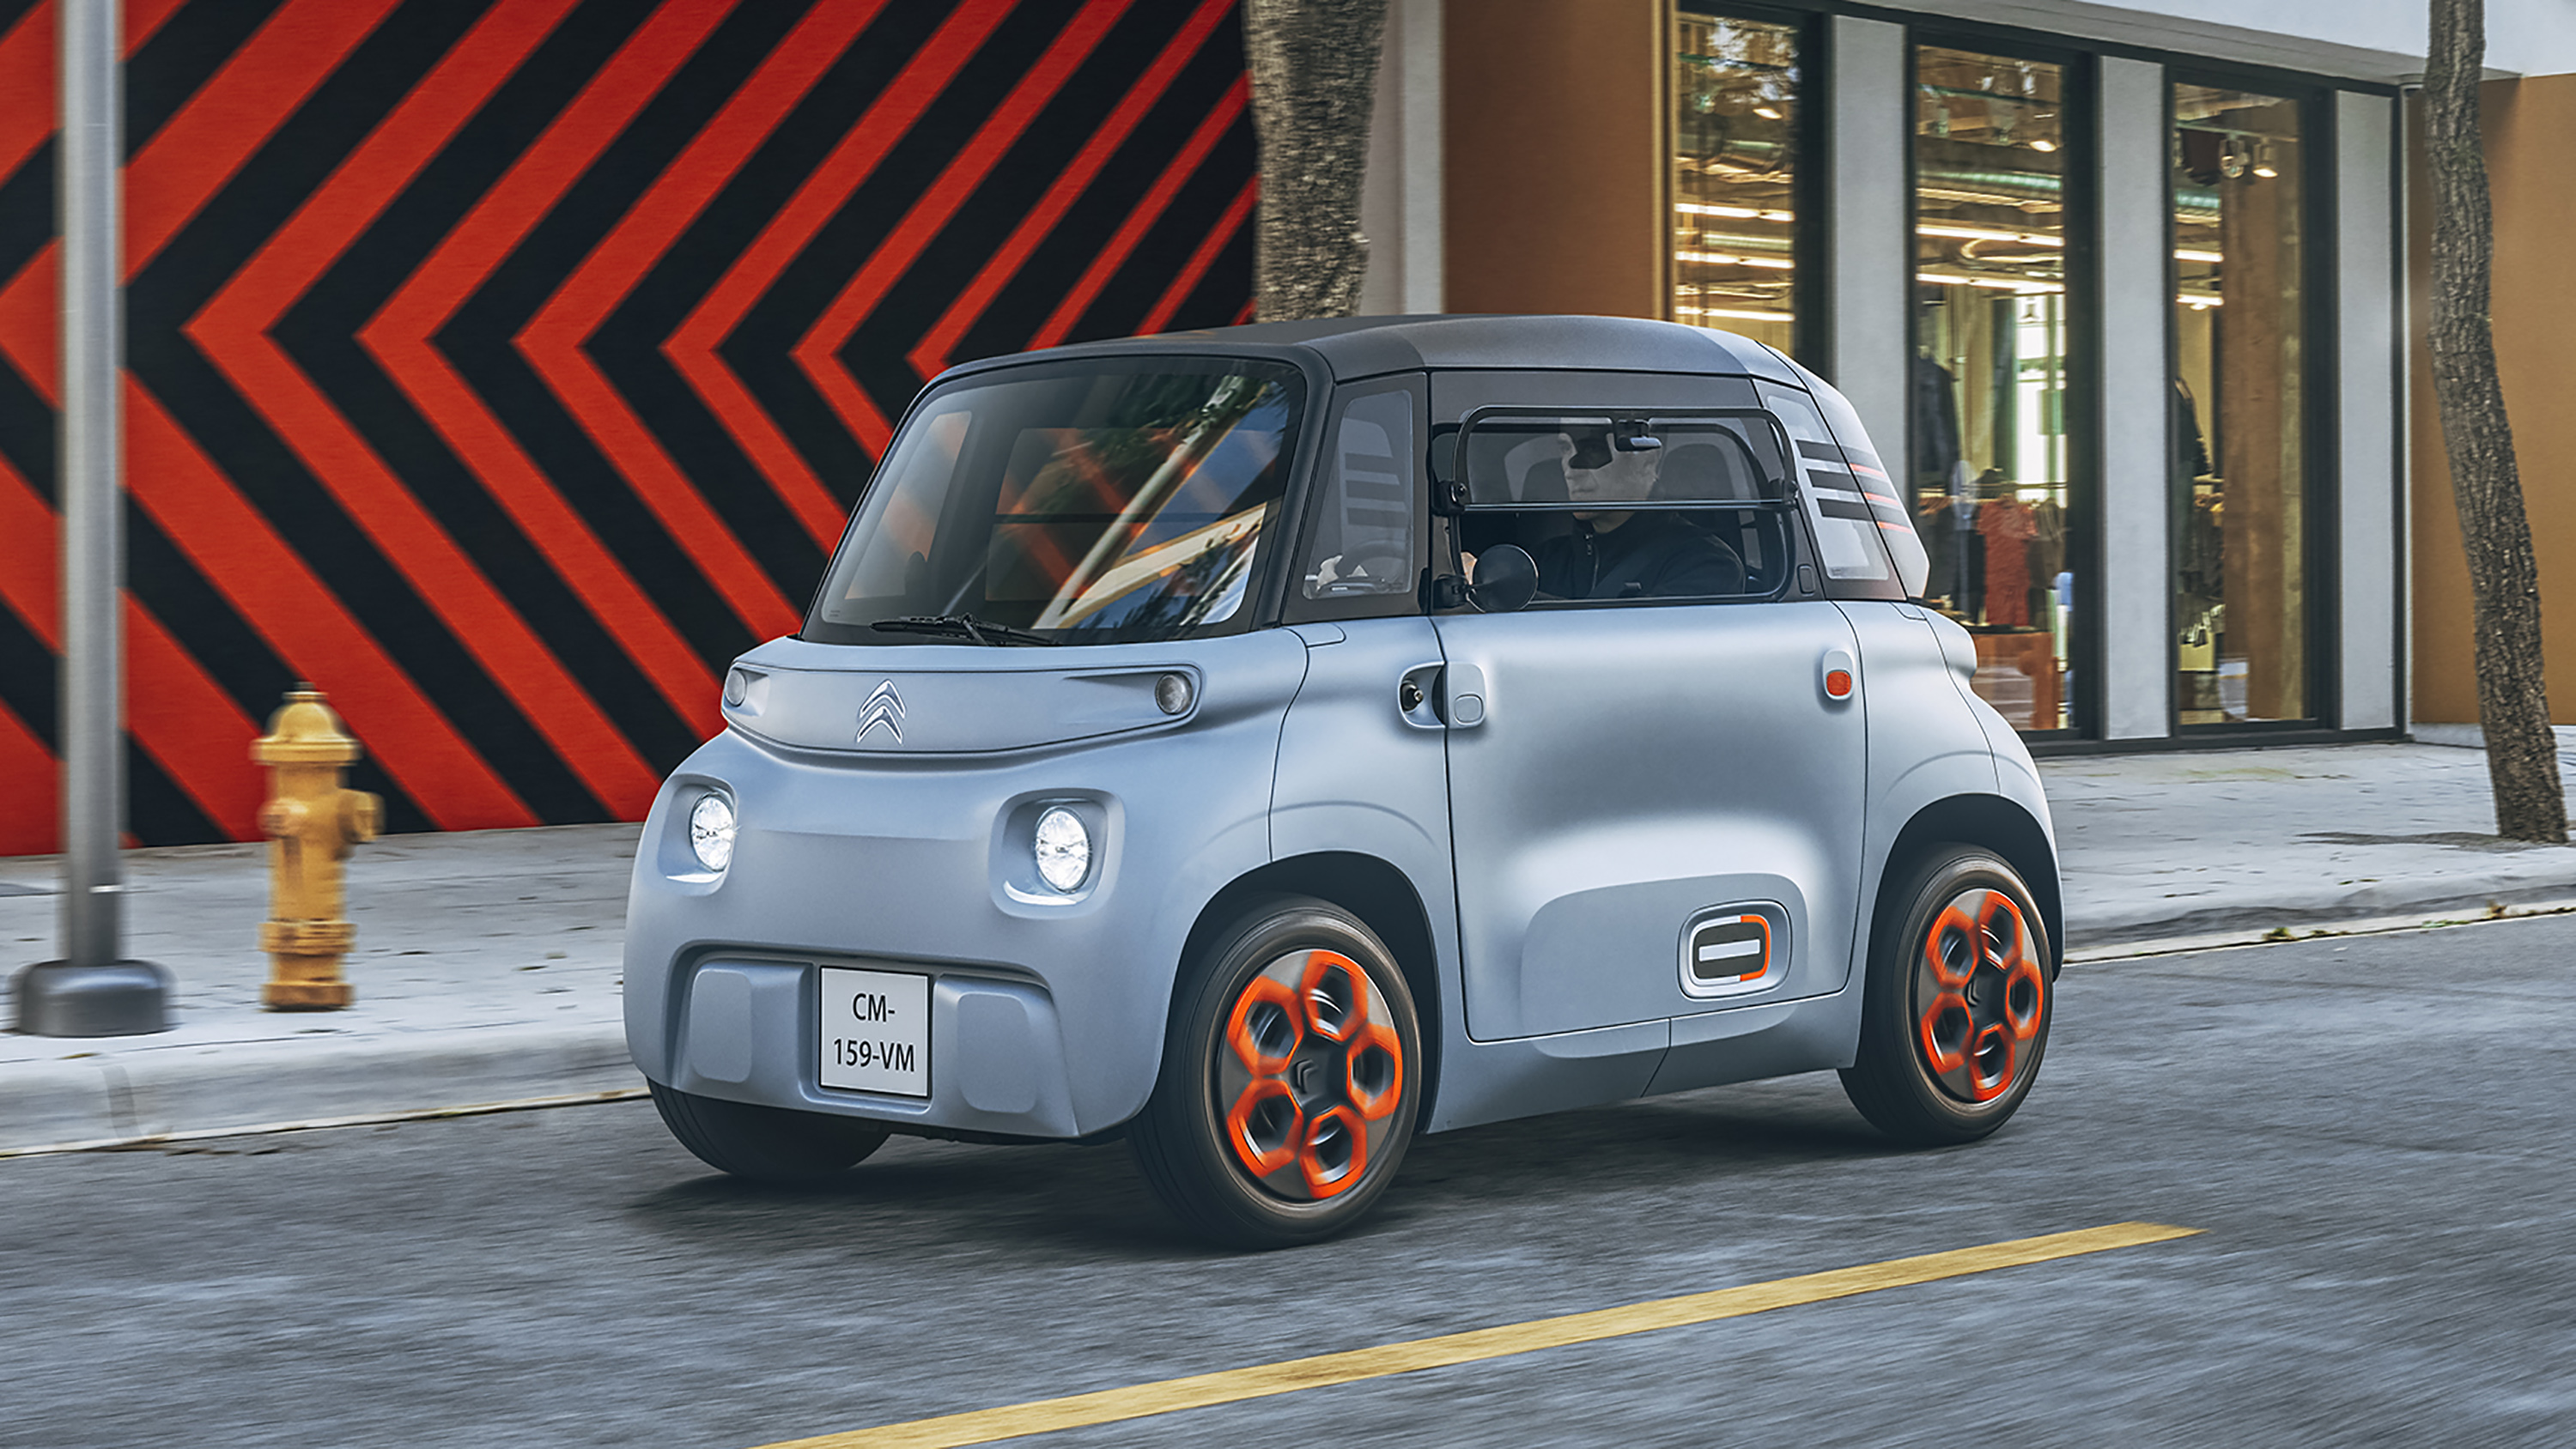 Citroen Ami: £18 per month (plus £3,150 upfront), 43-mile electric range |  BuyaCar